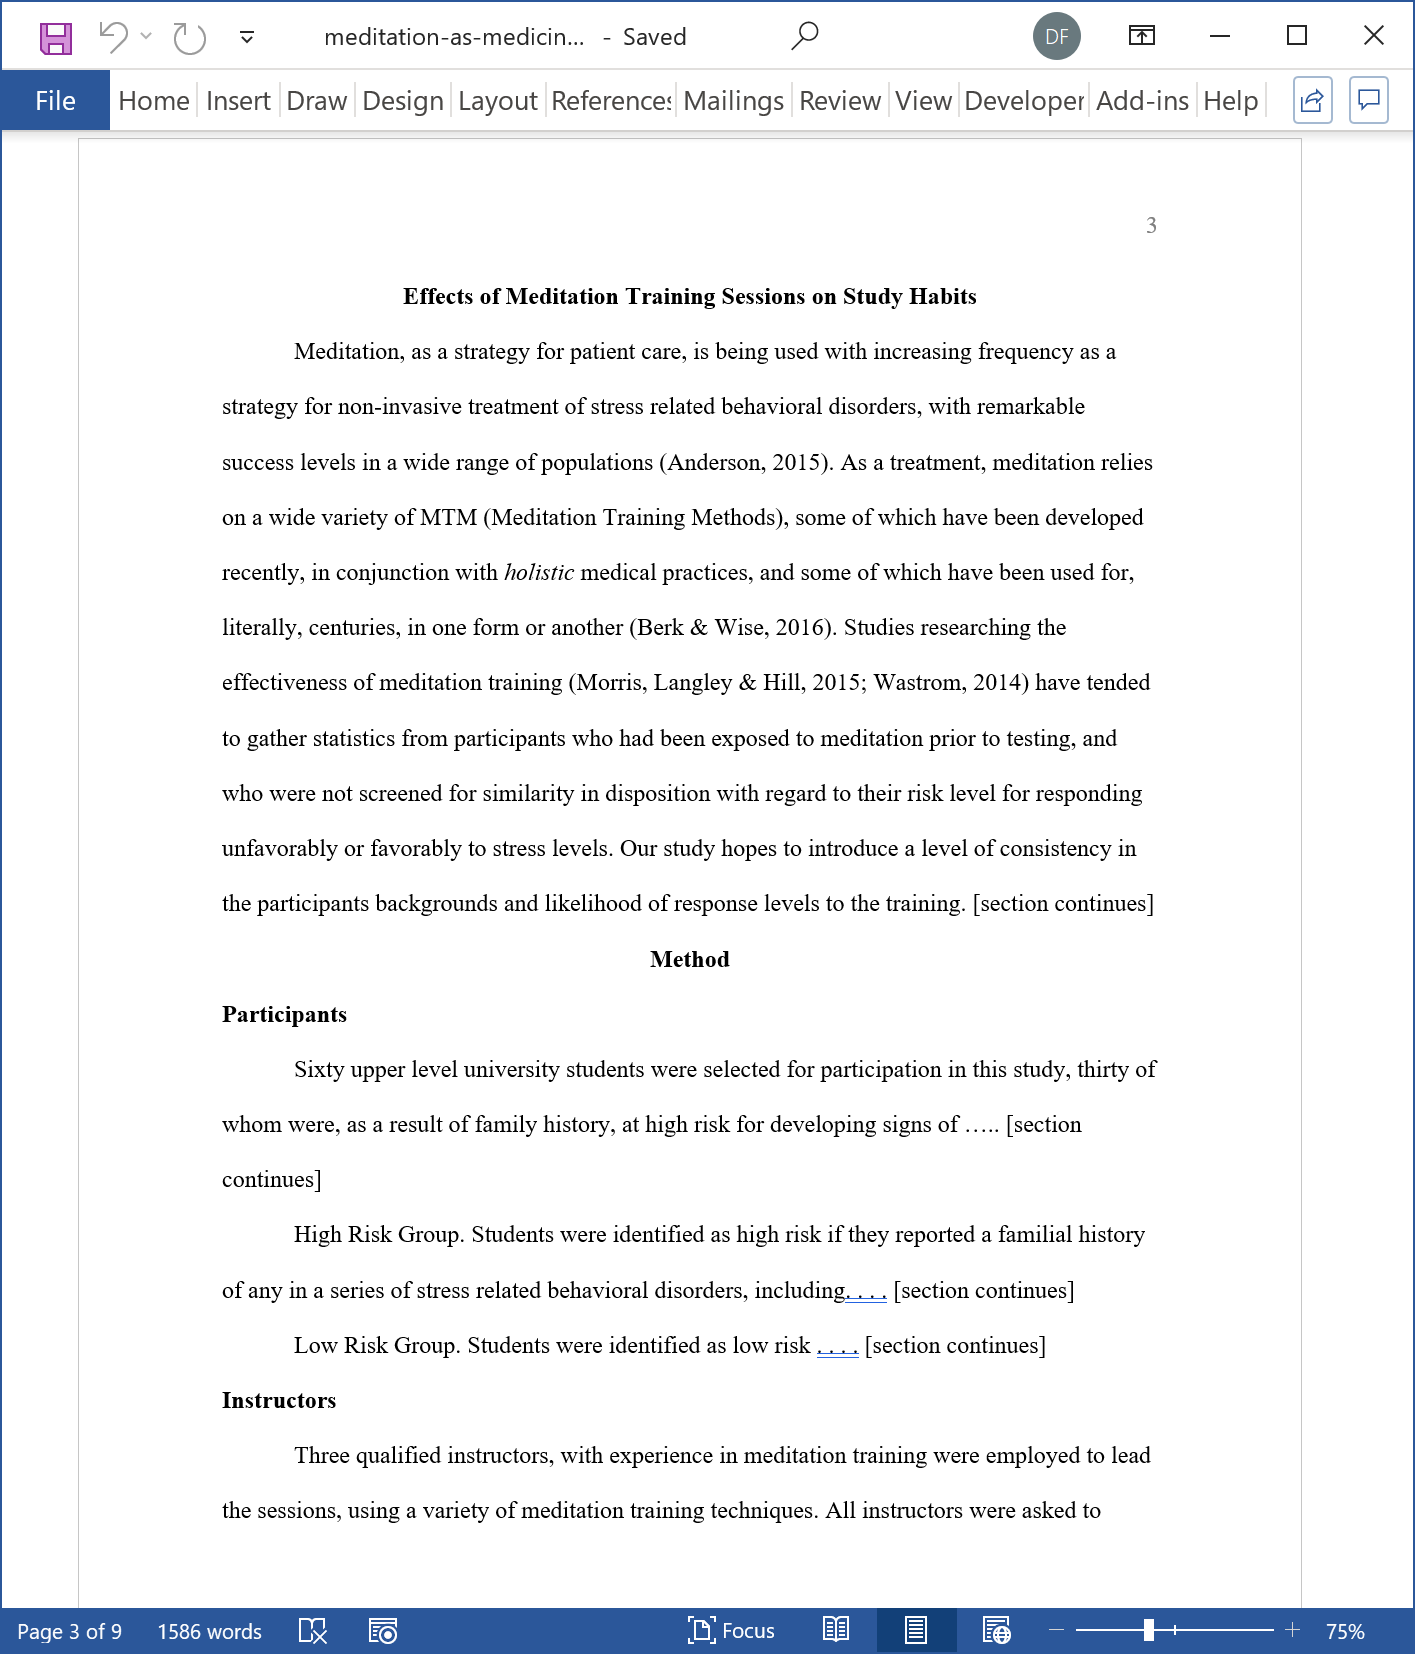 APA 7th Edition Style First Page of a Research Paper